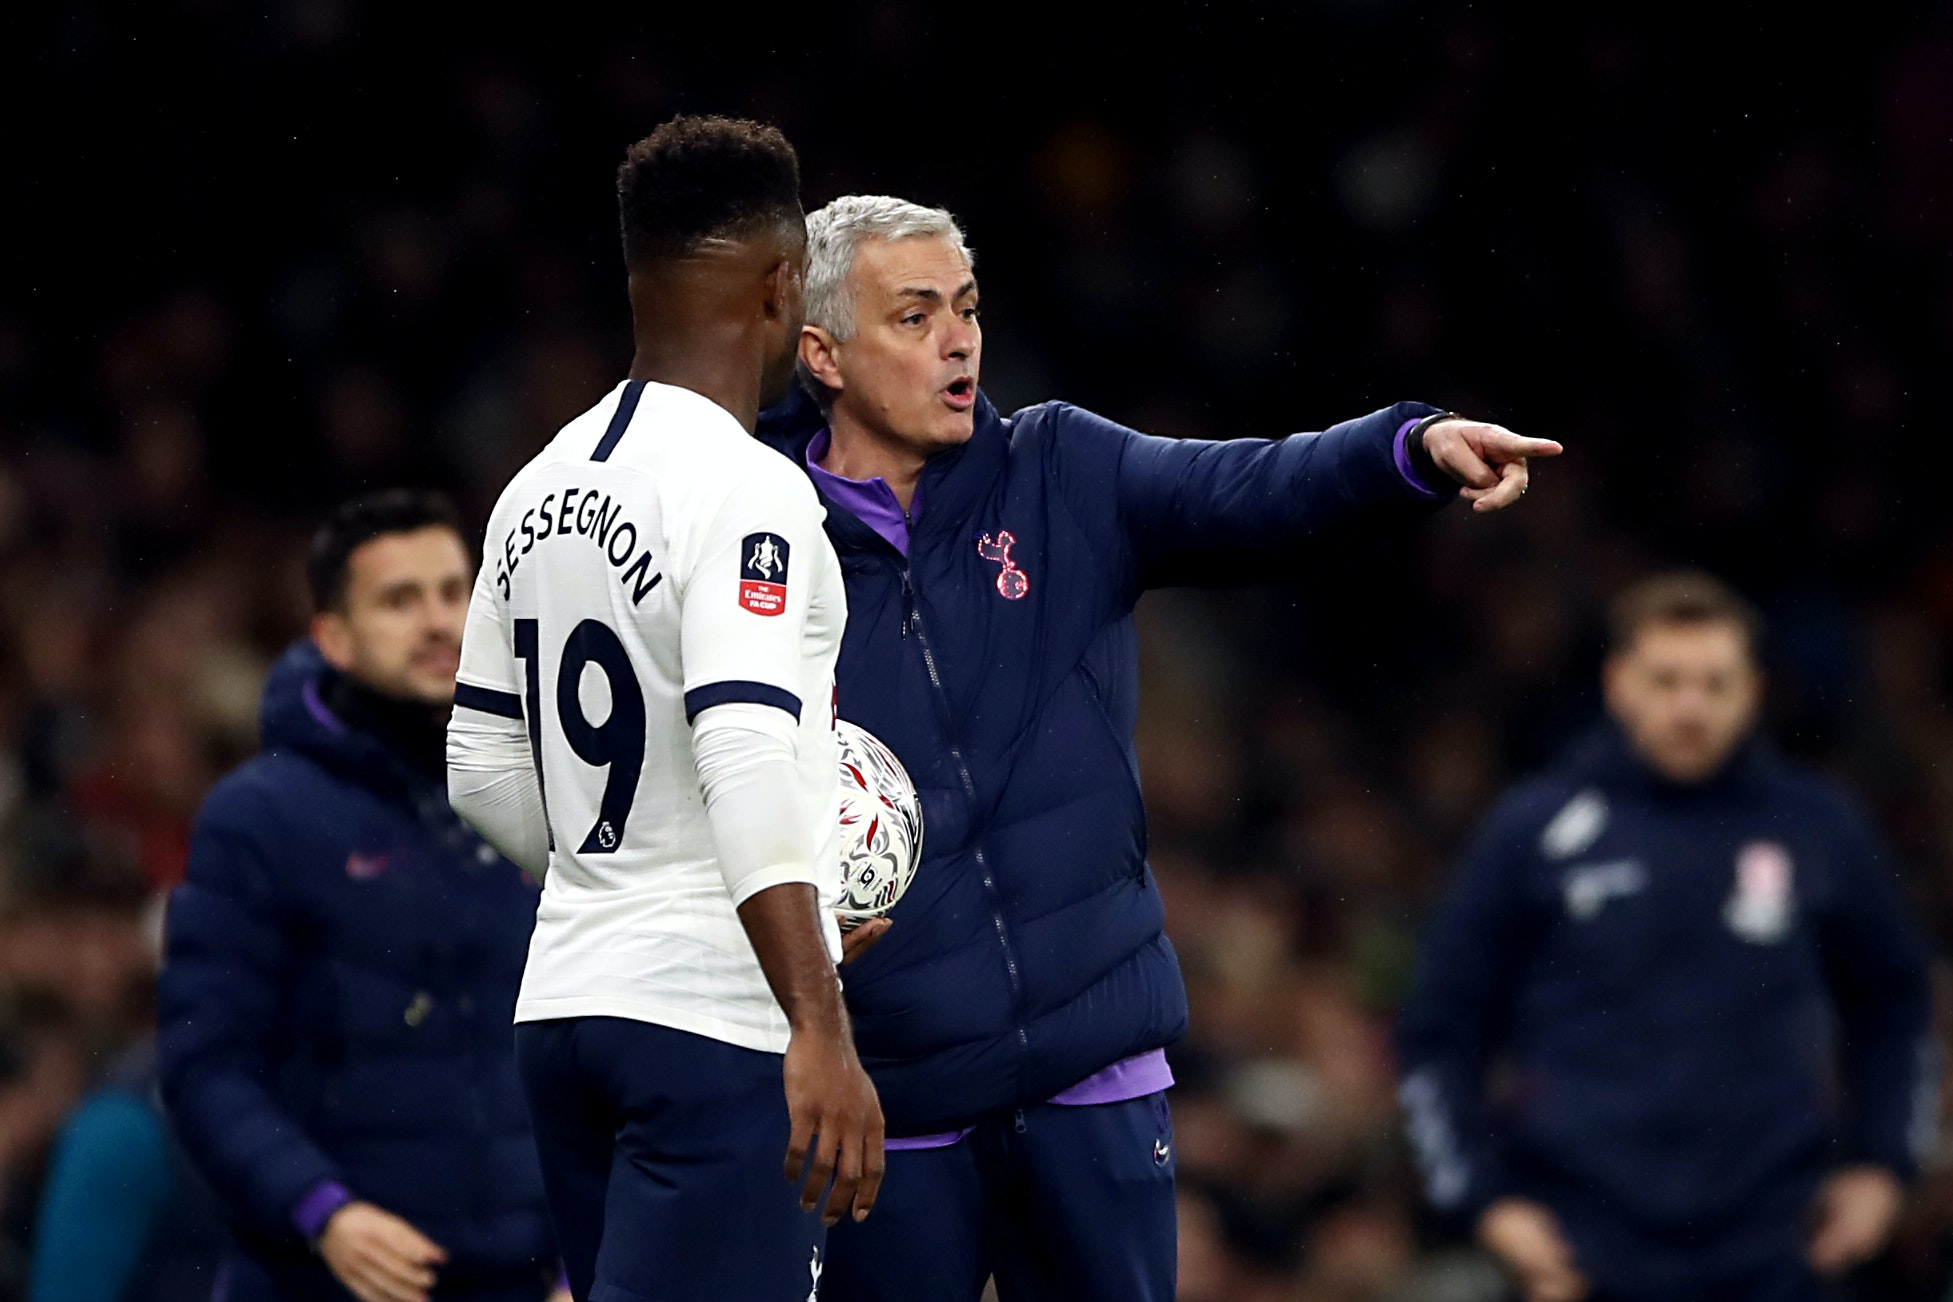 Tottenham reinforce social distancing rules after players spotted ...